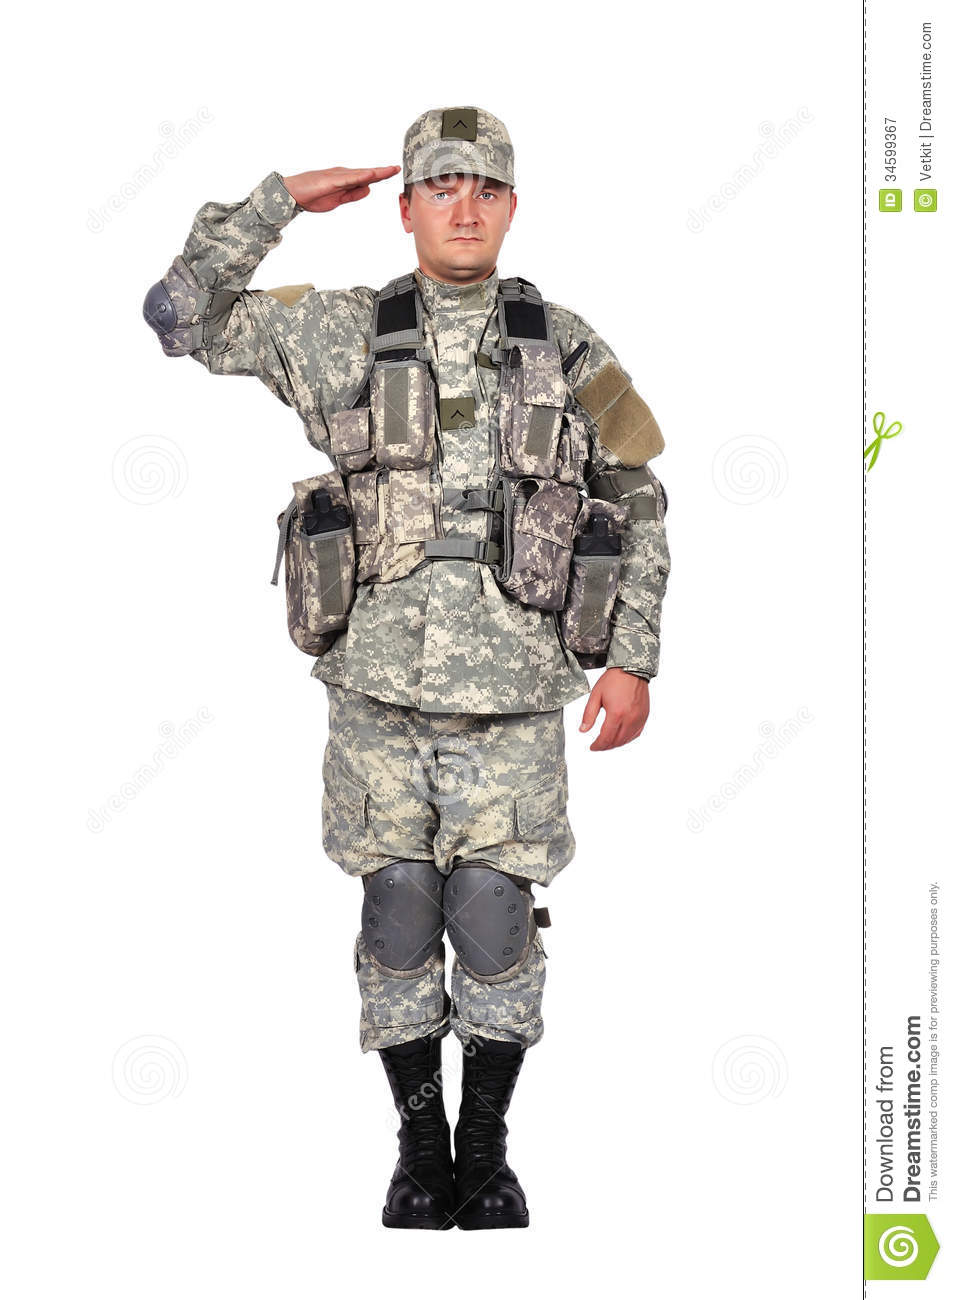 Soldier Salutes Royalty Free Stock Photography - Image: 34599367